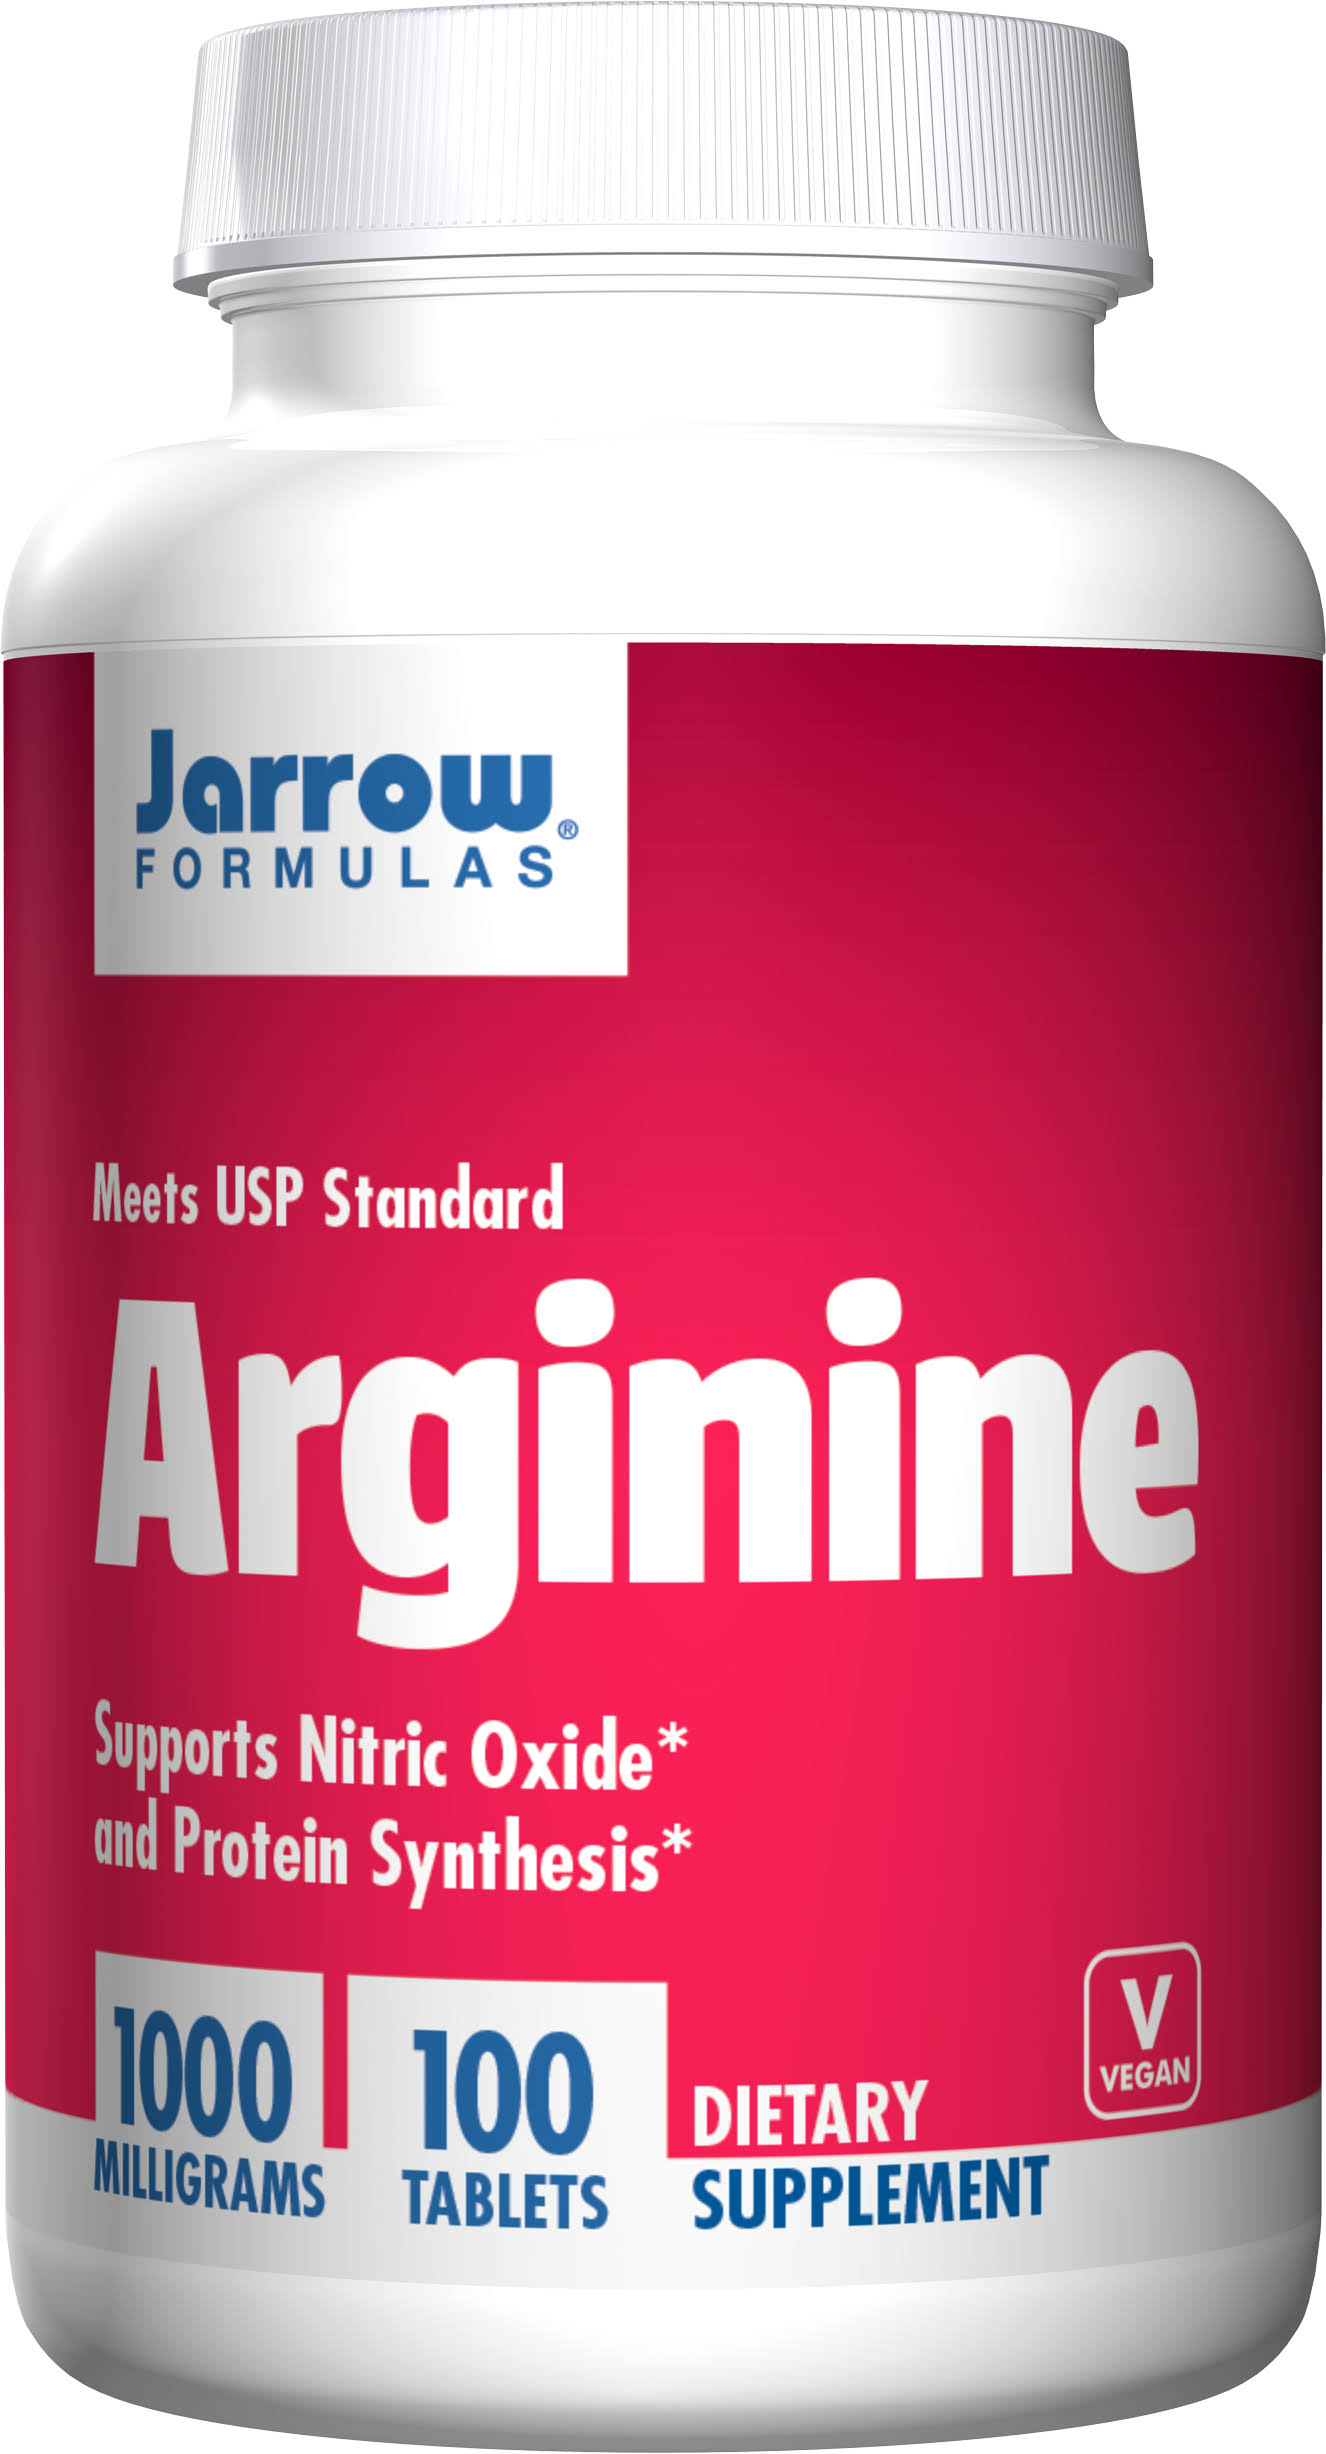 Jarrow Formulas L-Arginine Supplement - 1000mg, 100 Tablets